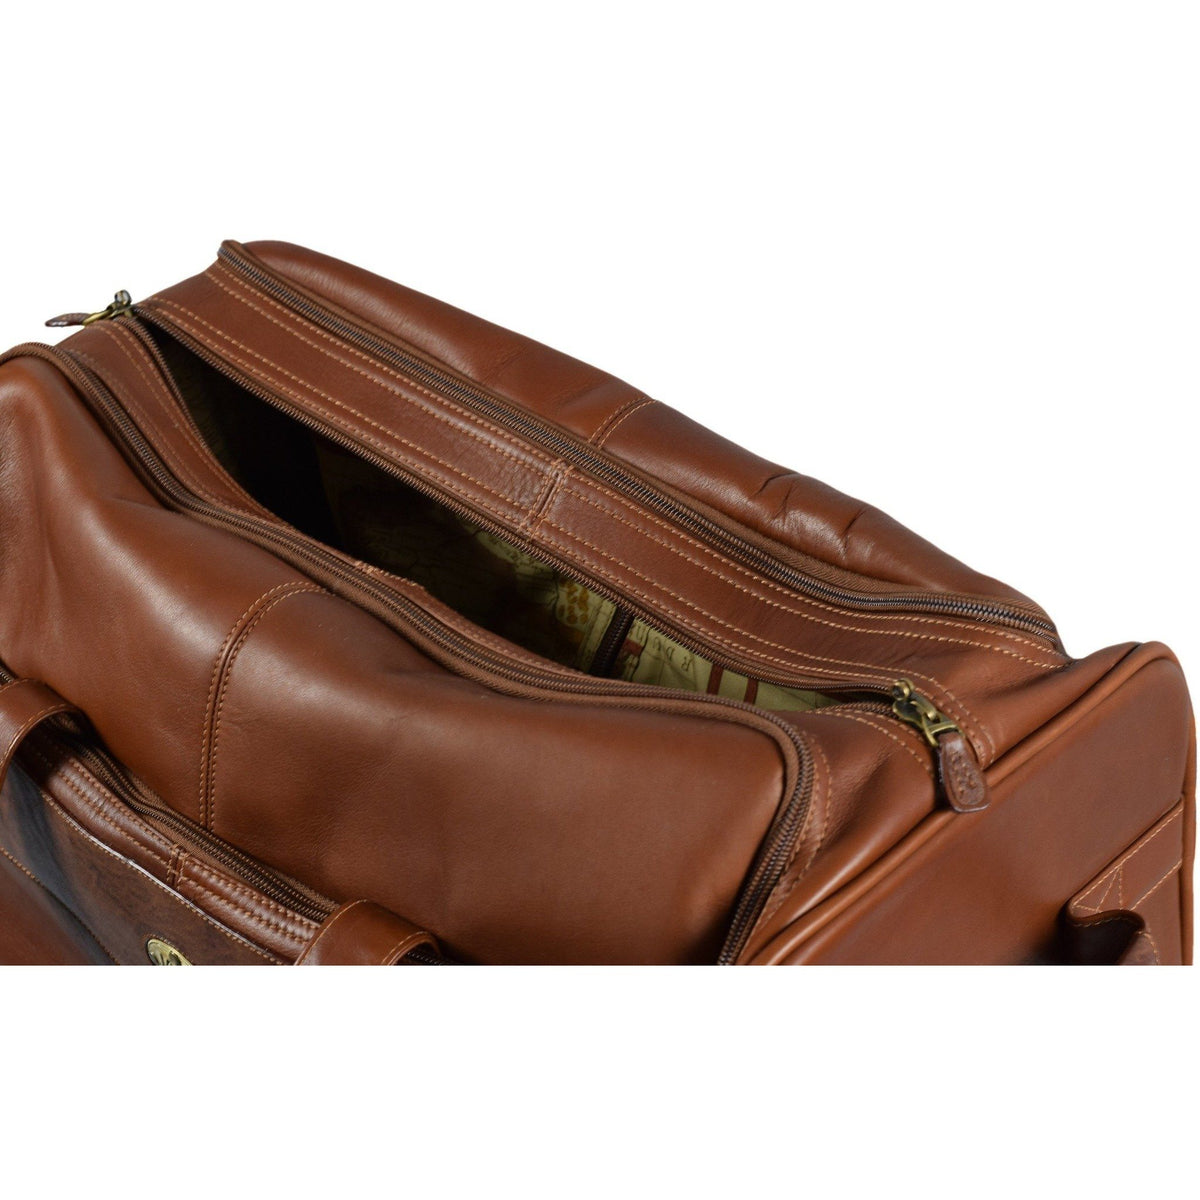 Santa Fe Rolling Garment Duffel Bag, Garment Bag | LAND Leather